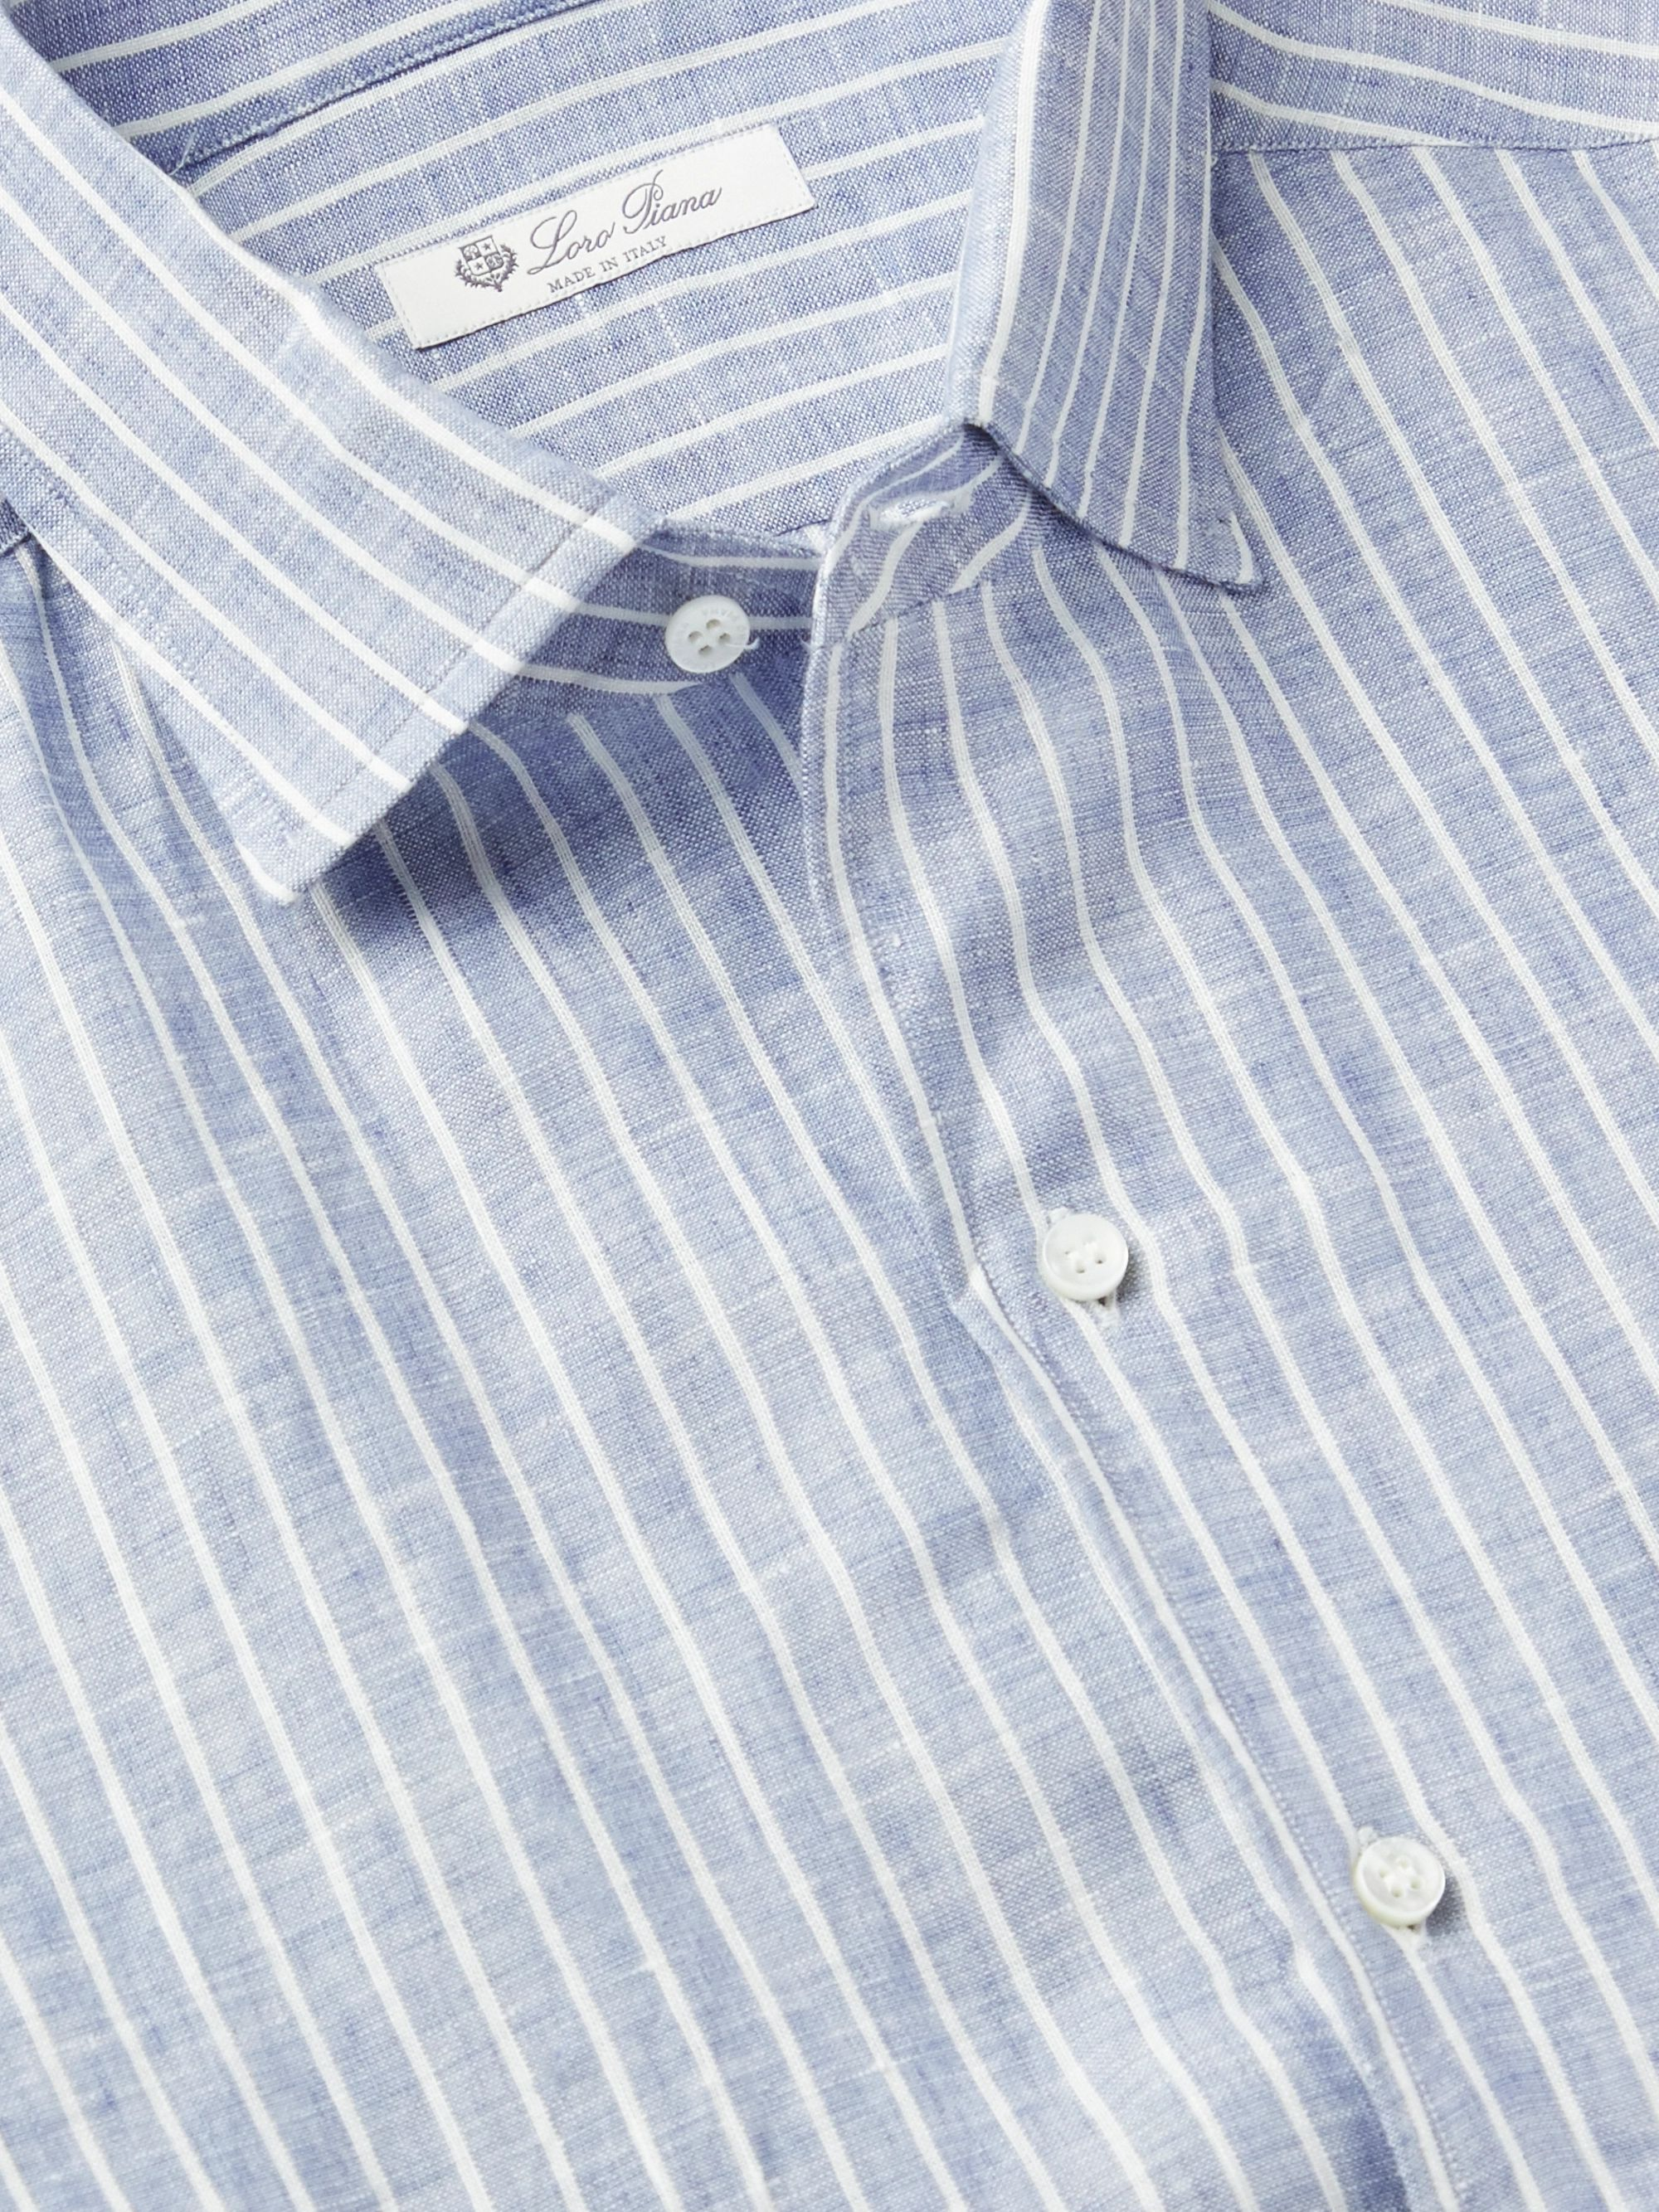 Loro Piana Striped Linen Shirt